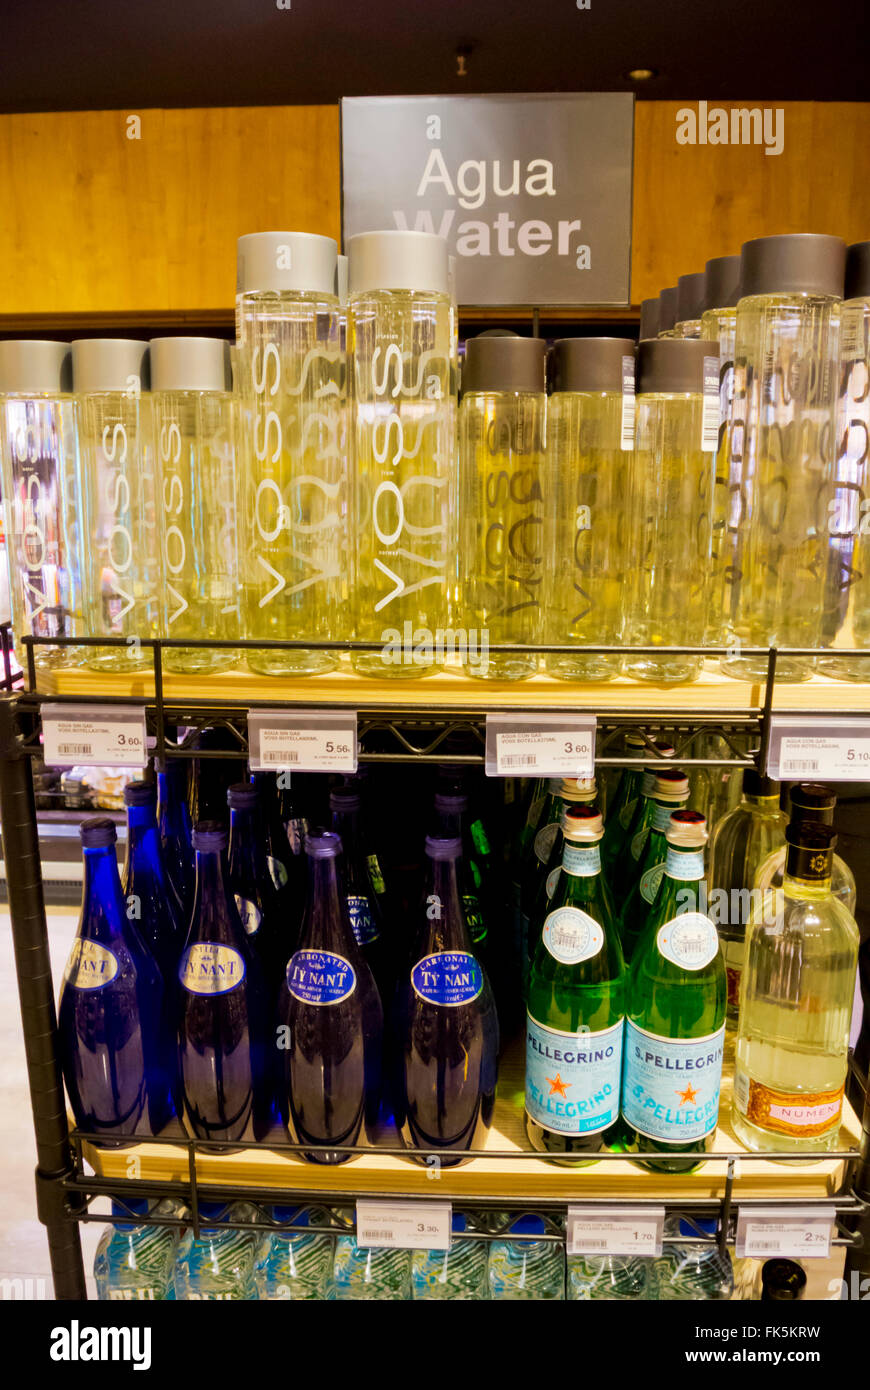 Bottled water, Gourmet Experience, top-floor food court and food shop, El Corte Ingles, Malaga, Andalucia, Spain - Stock Image